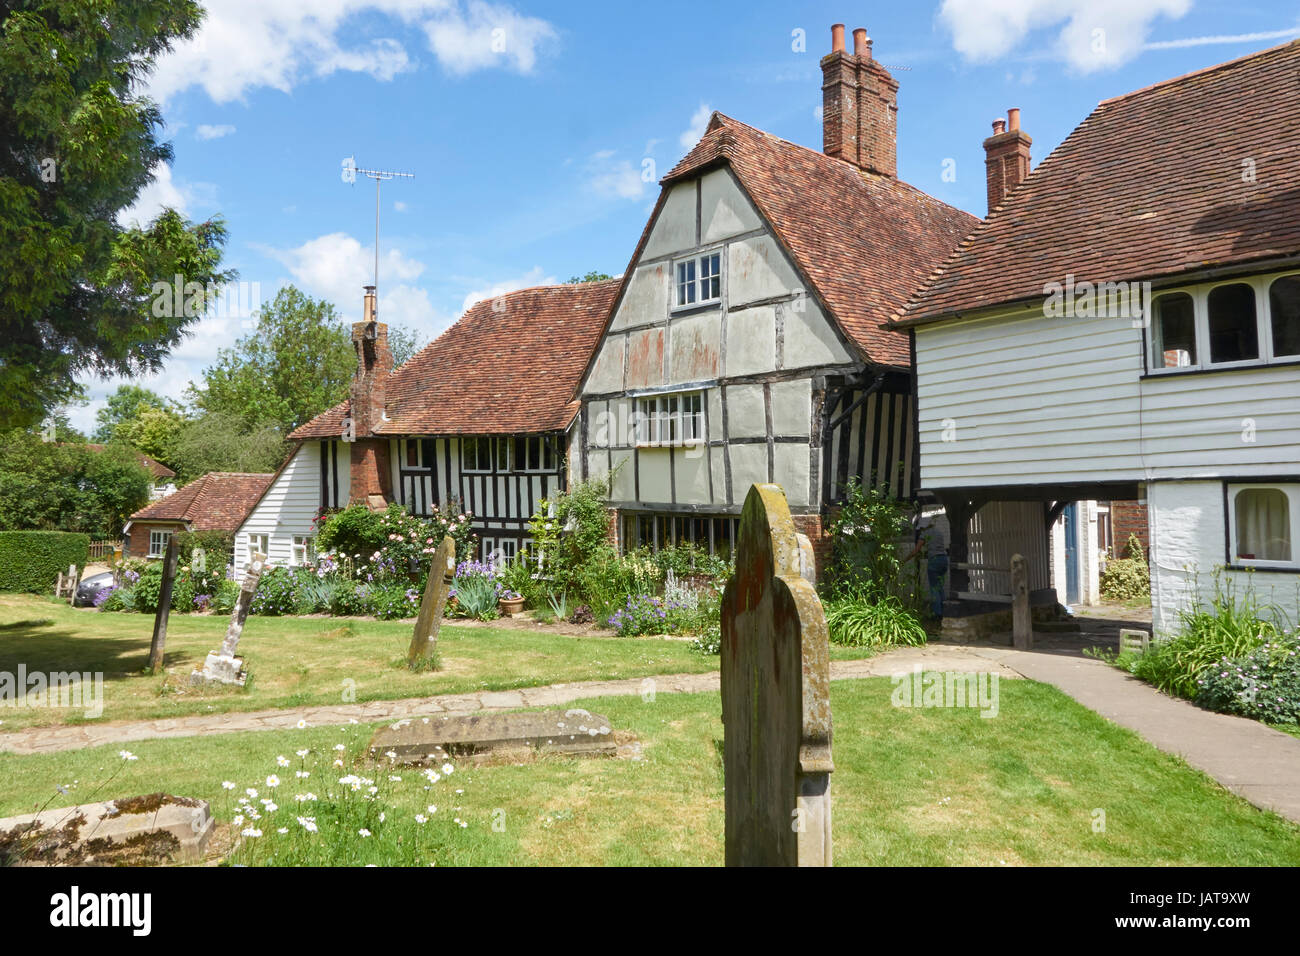 Quaint Tudor cottages bordering the churchyard in the picturesque Kentish Wealden village of Smarden, Kent, England, Stock Photo